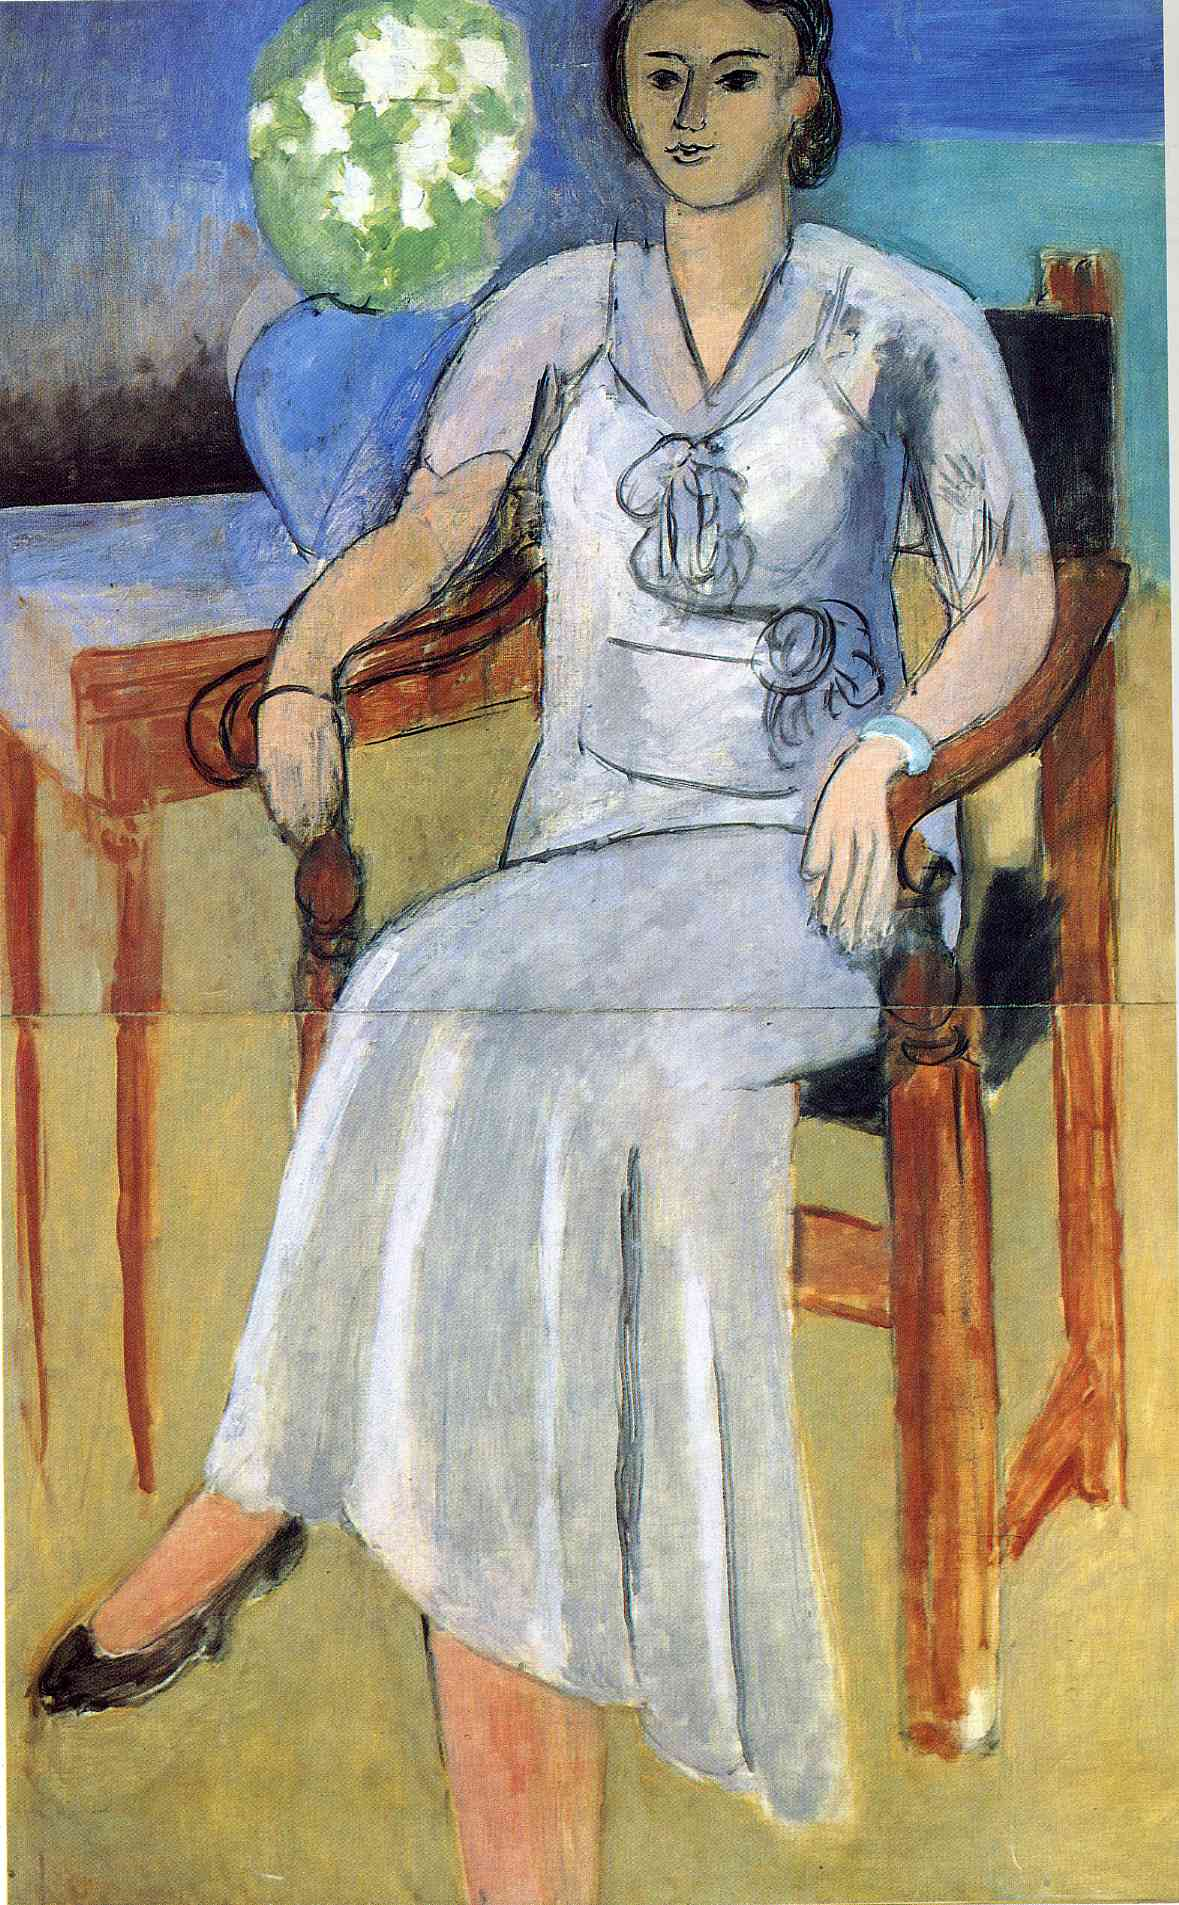 Henri Matisse - Woman with a White Dress 1934